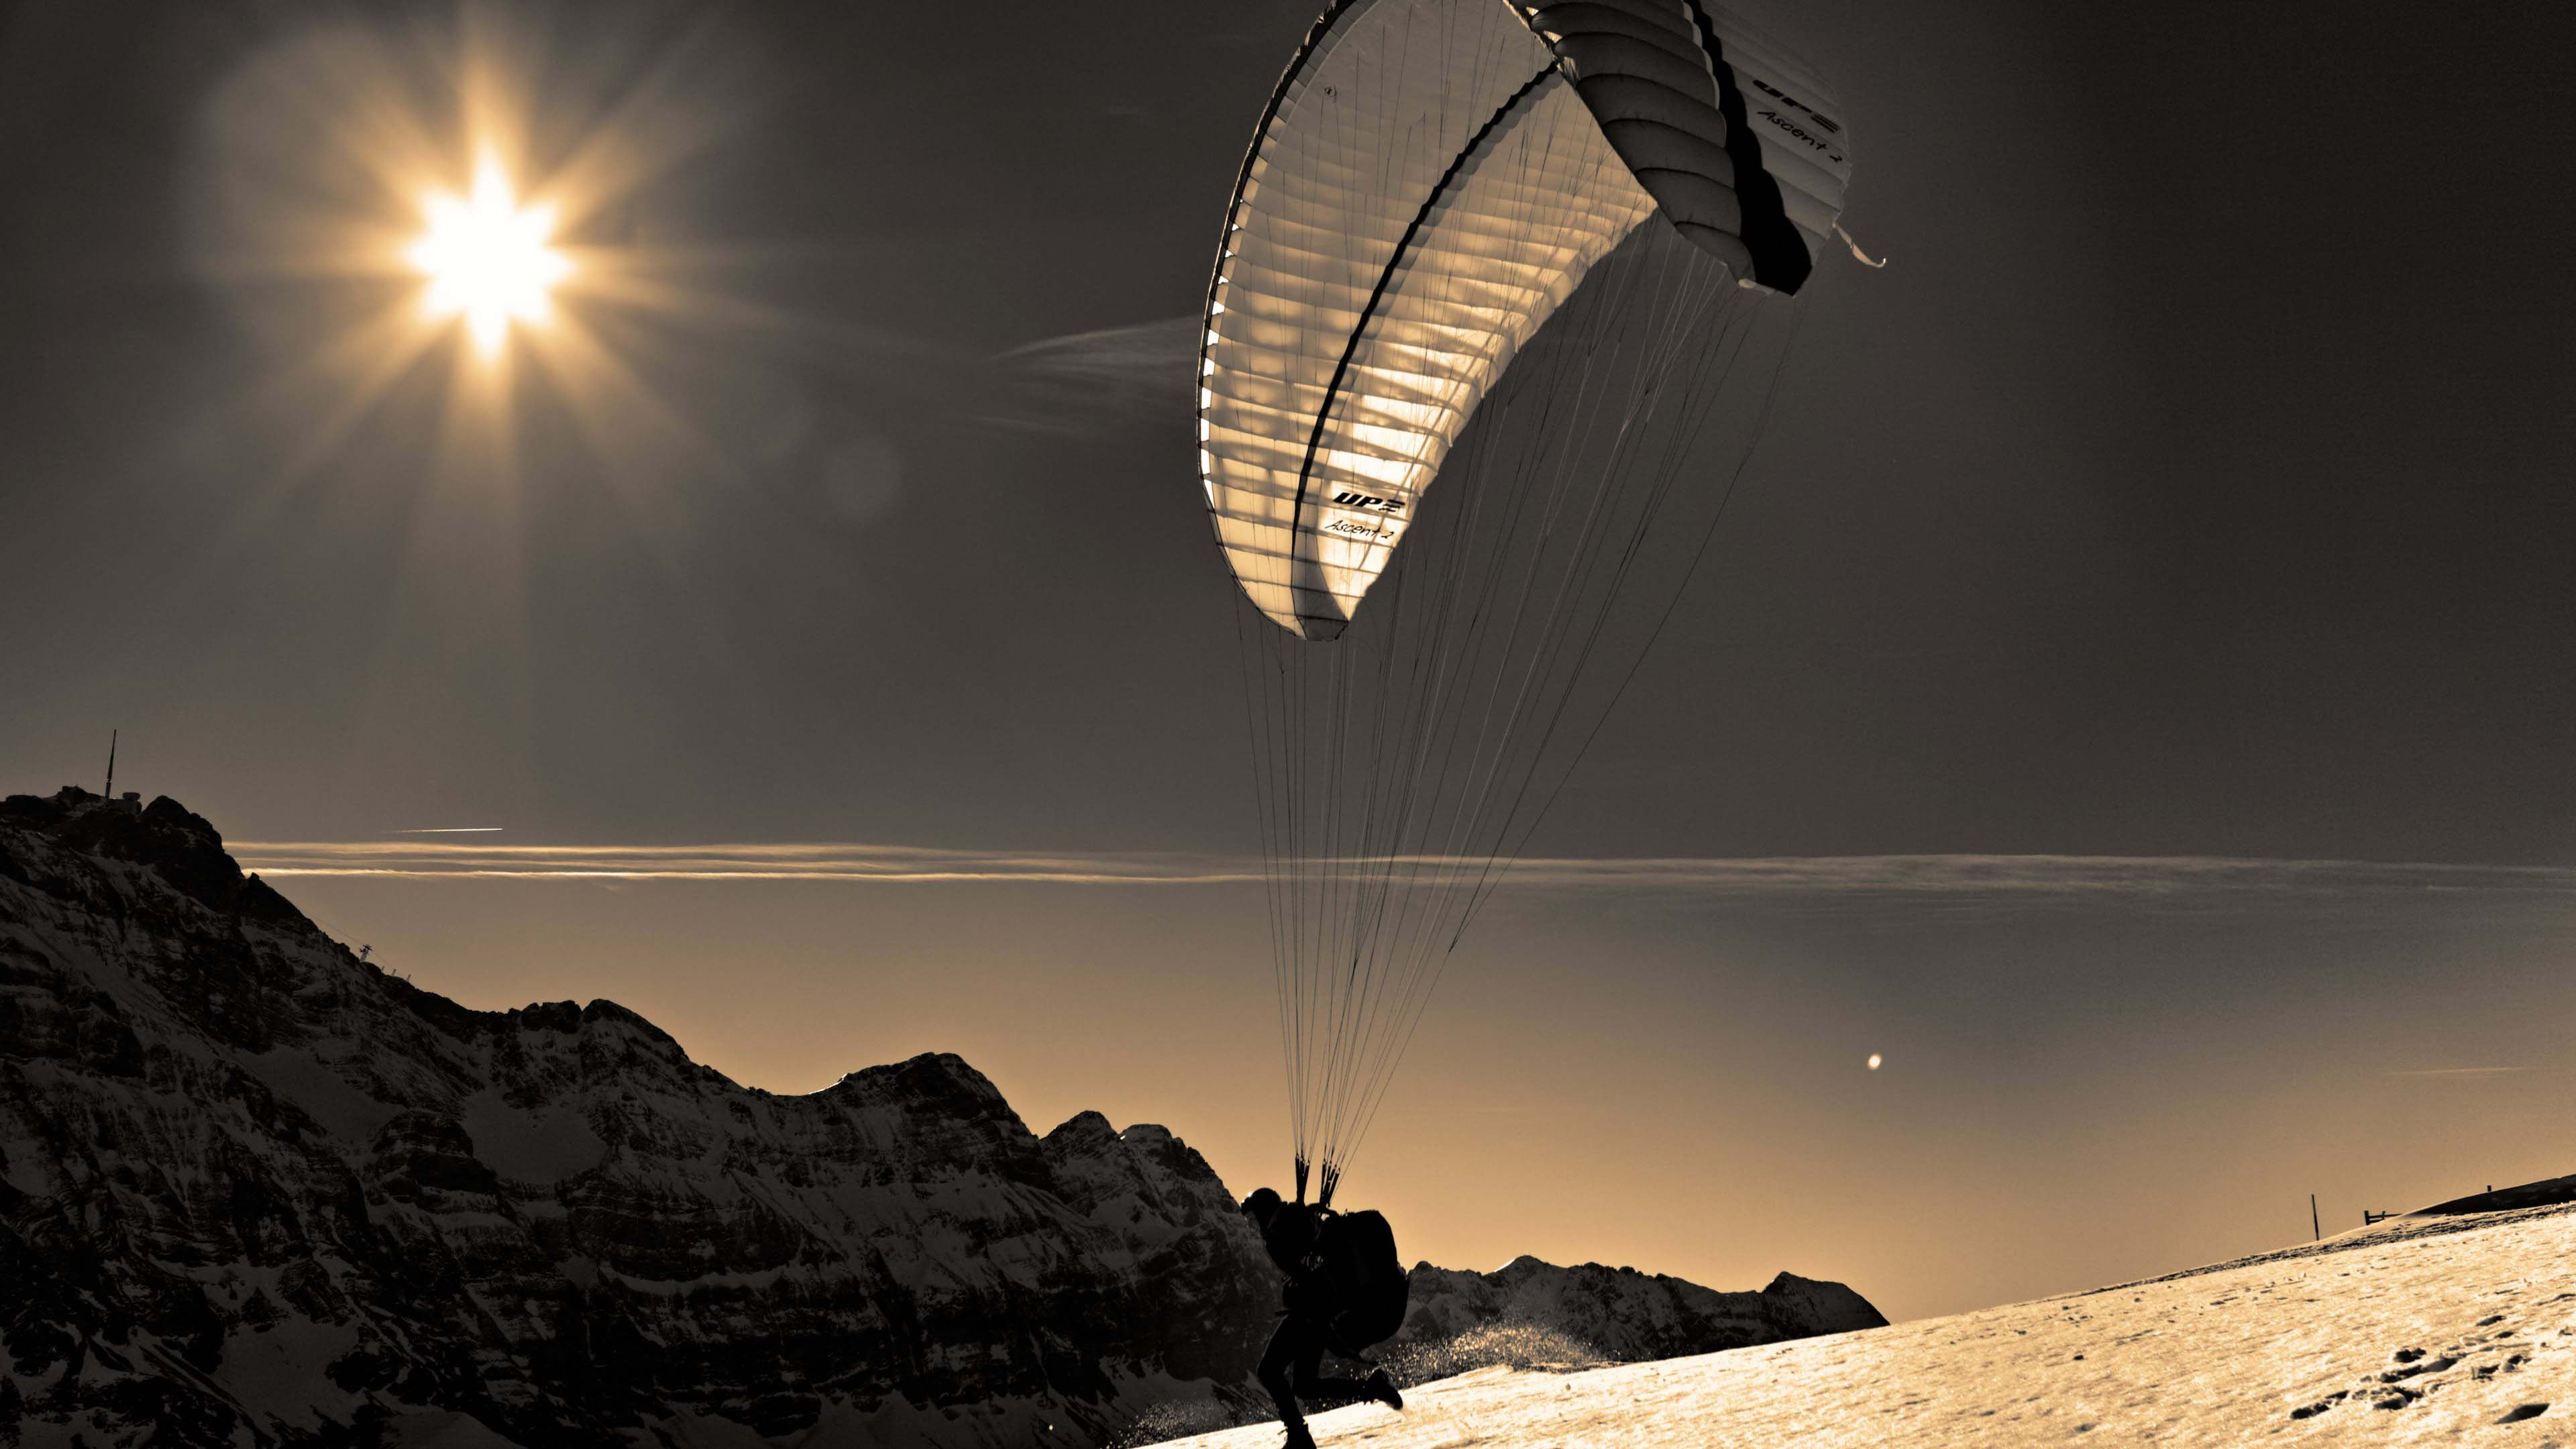 paragliding hd wide wallpaper for widescreen wallpapers hd wallpapers